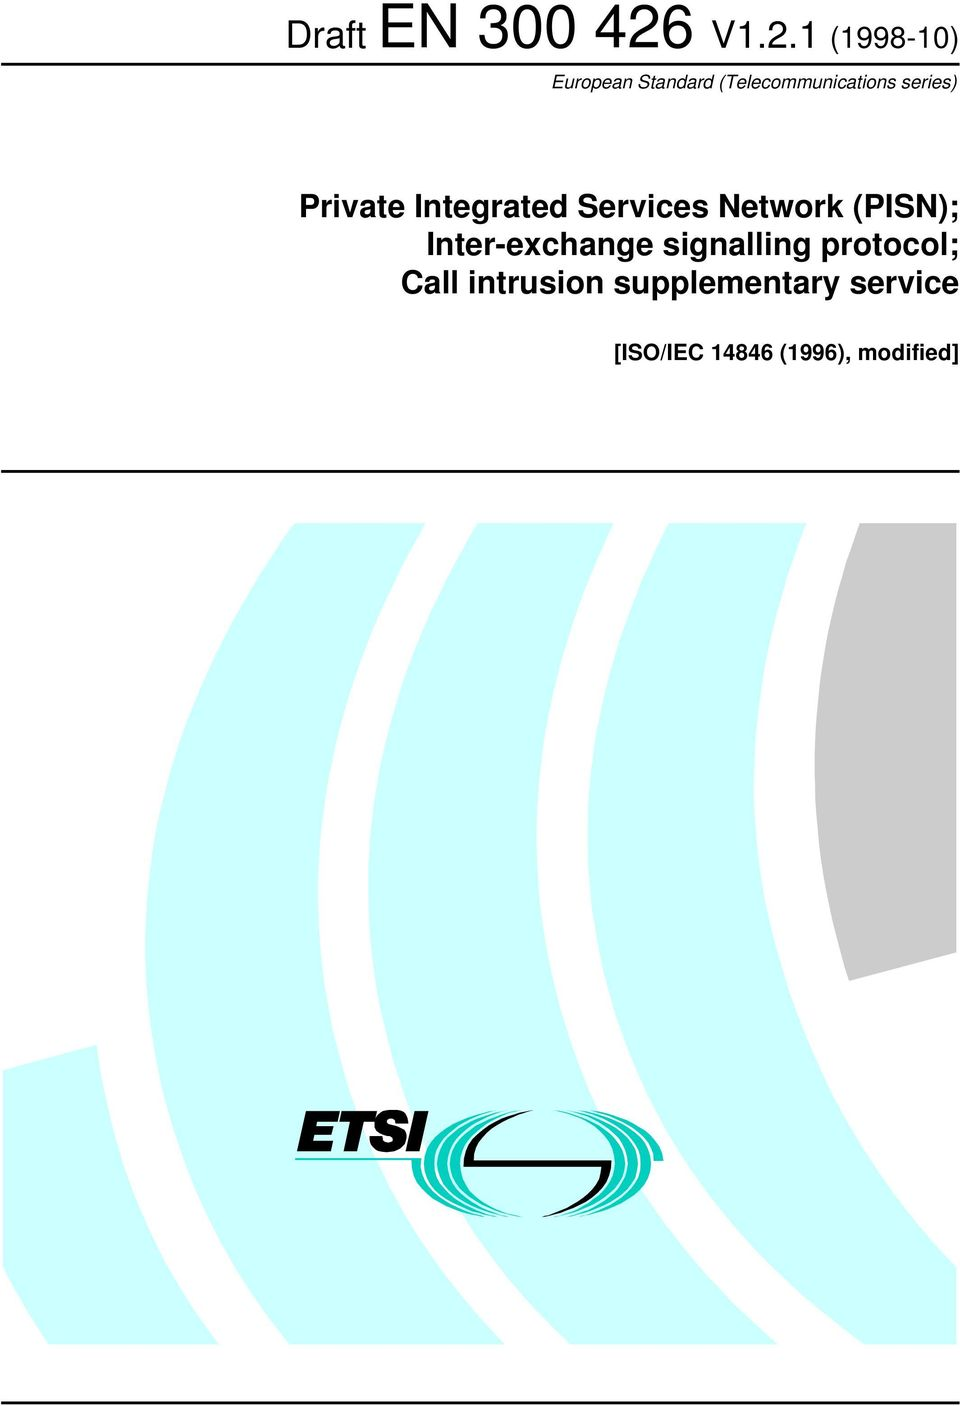 Inter-exchange signalling protocol; Call